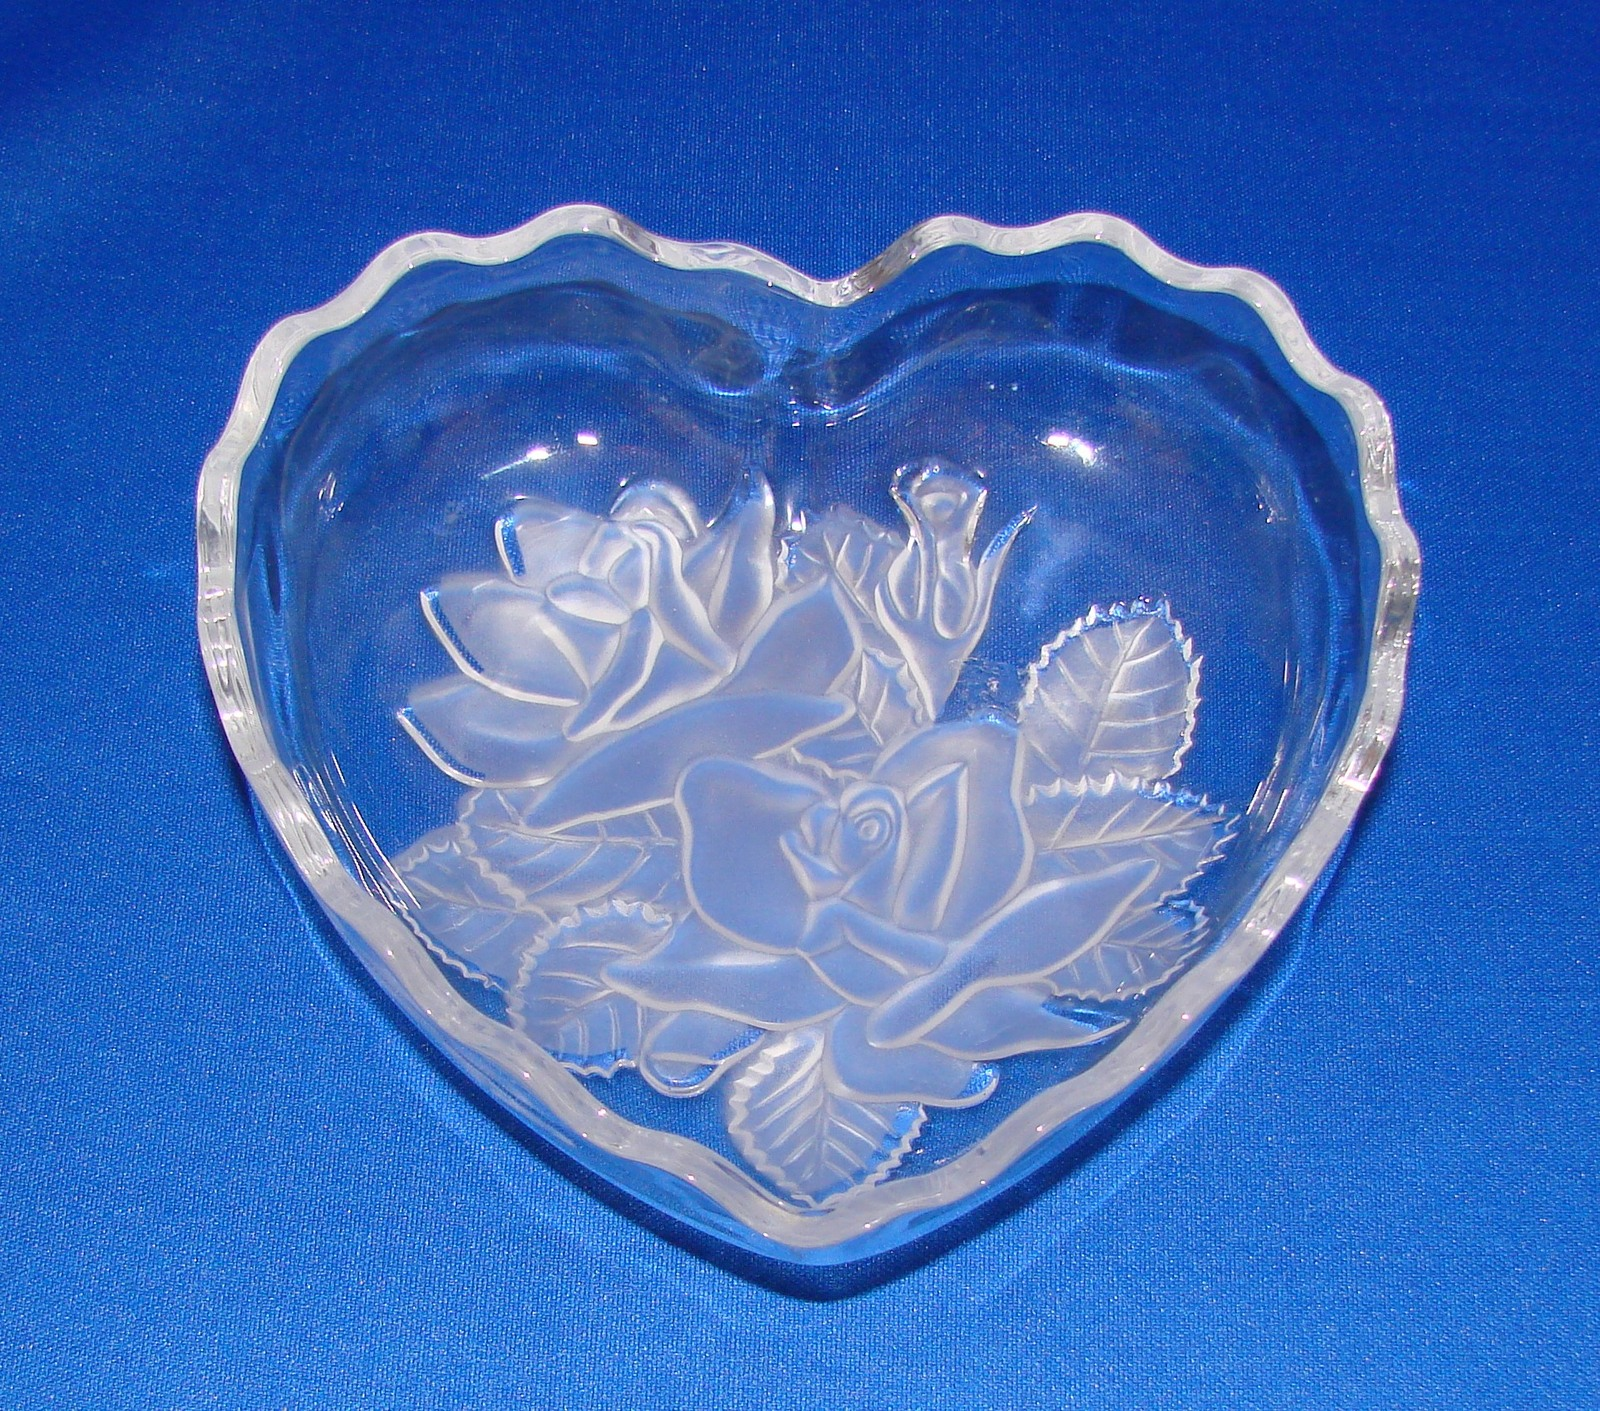 Primary image for Mikasa Embossed Flowers Crystal Heart Shaped Candy Dish